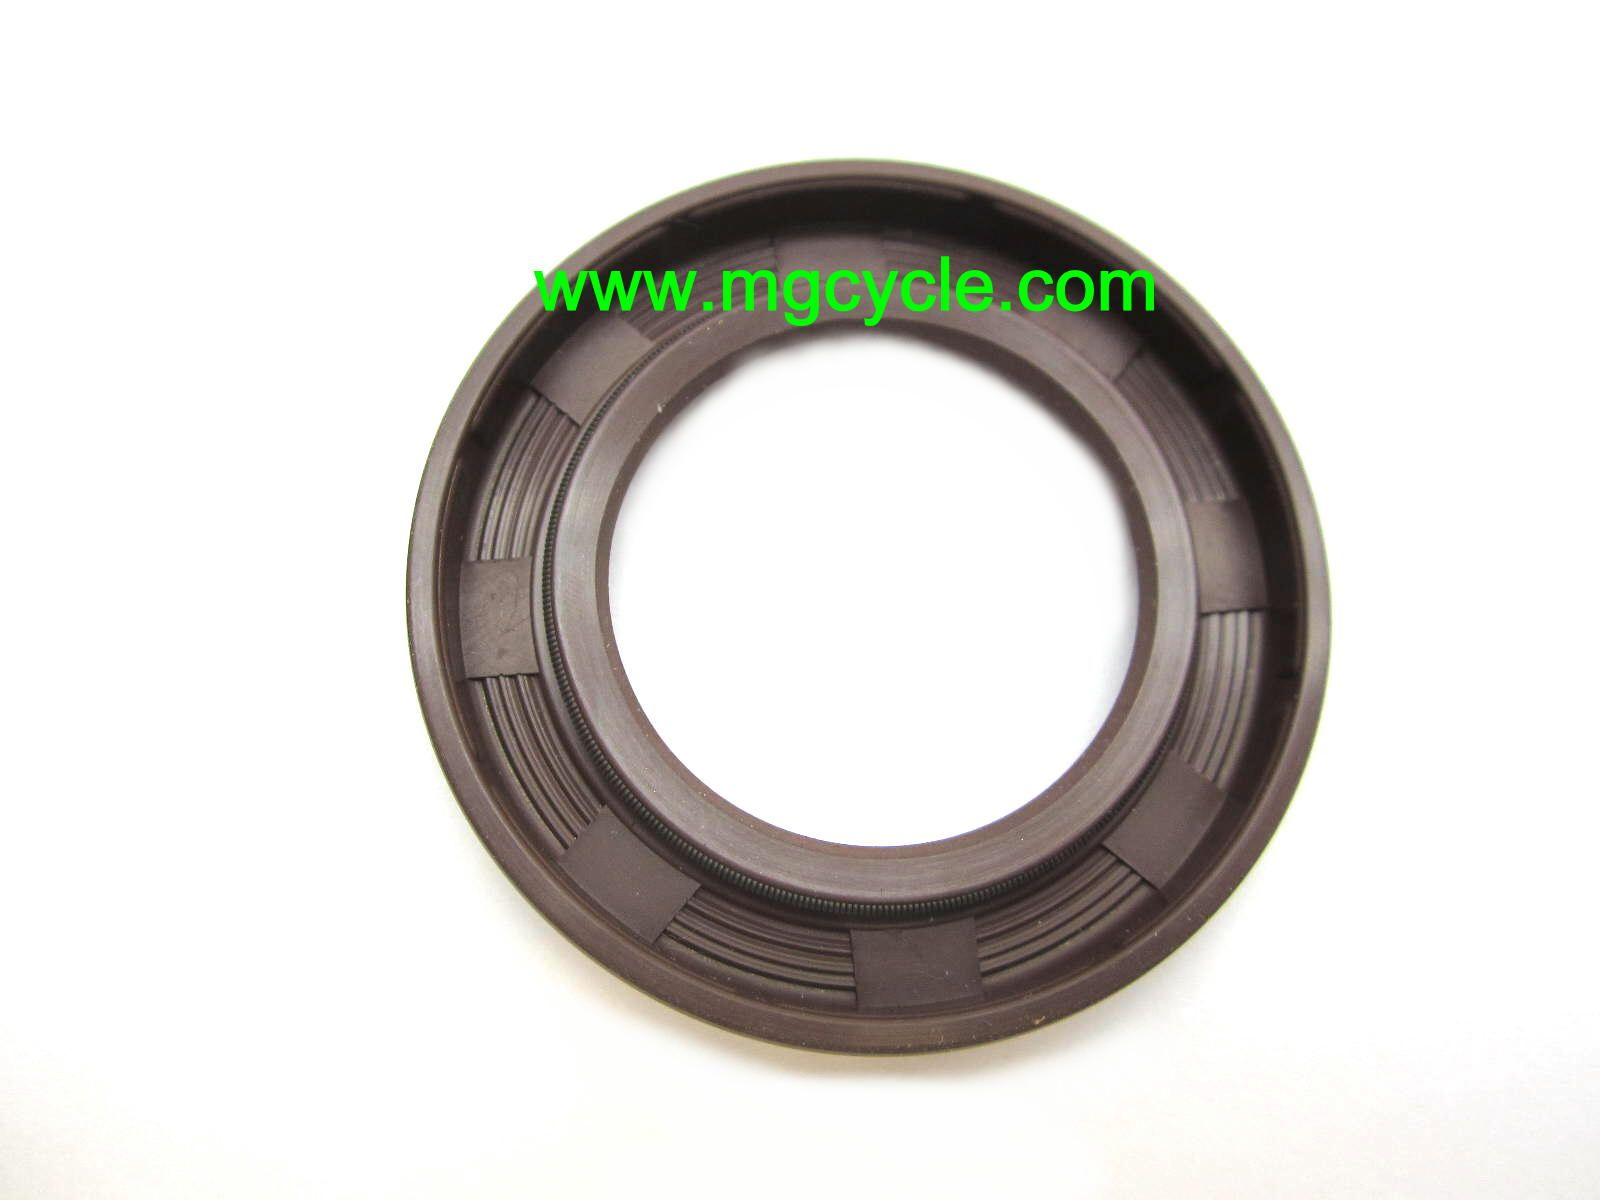 Viton final drive pinion shaft seal, V11 Sport V11 LeMans series